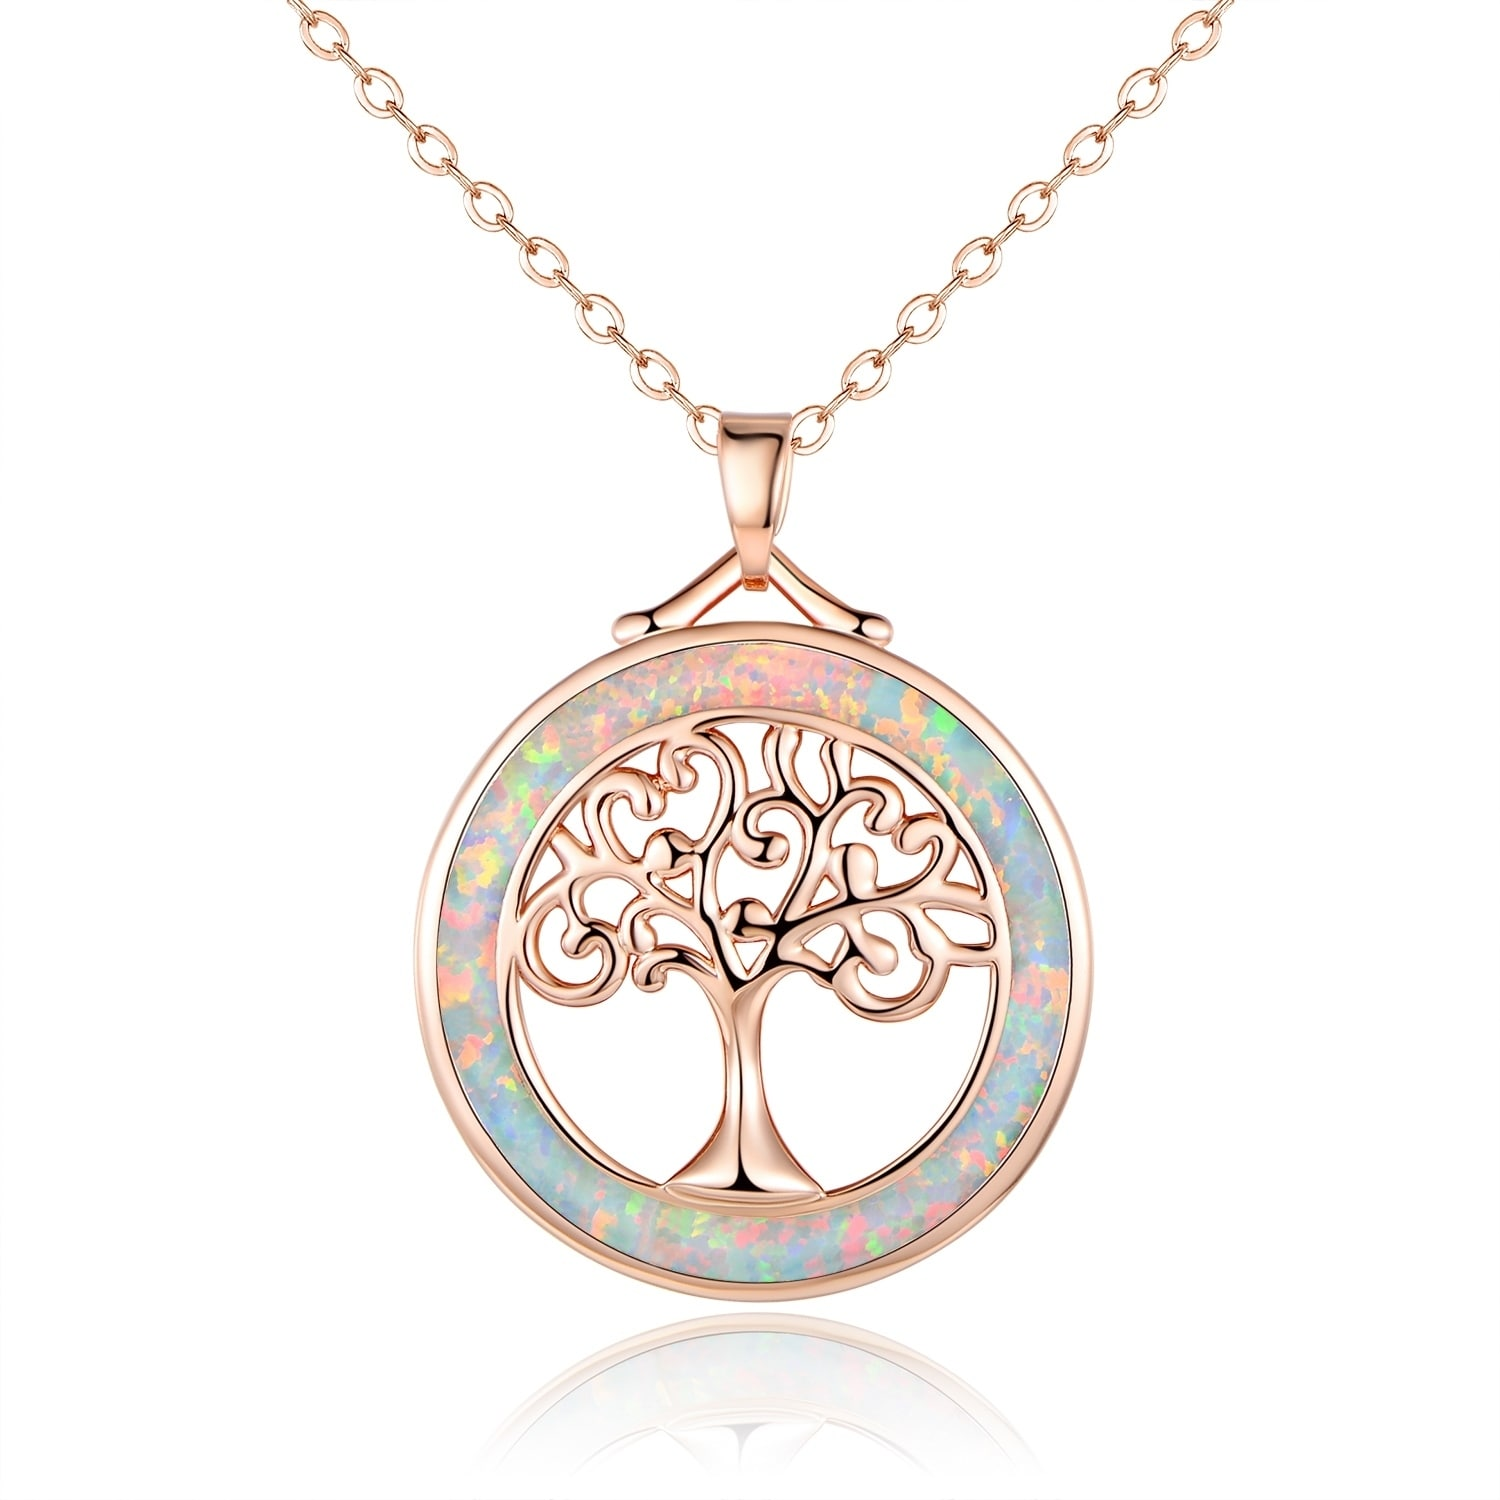 8c4861789d2 Shop Rose Gold Plated Fire Opal Tree Of Life Pendant Necklace - On Sale -  Free Shipping On Orders Over $45 - Overstock - 24224980